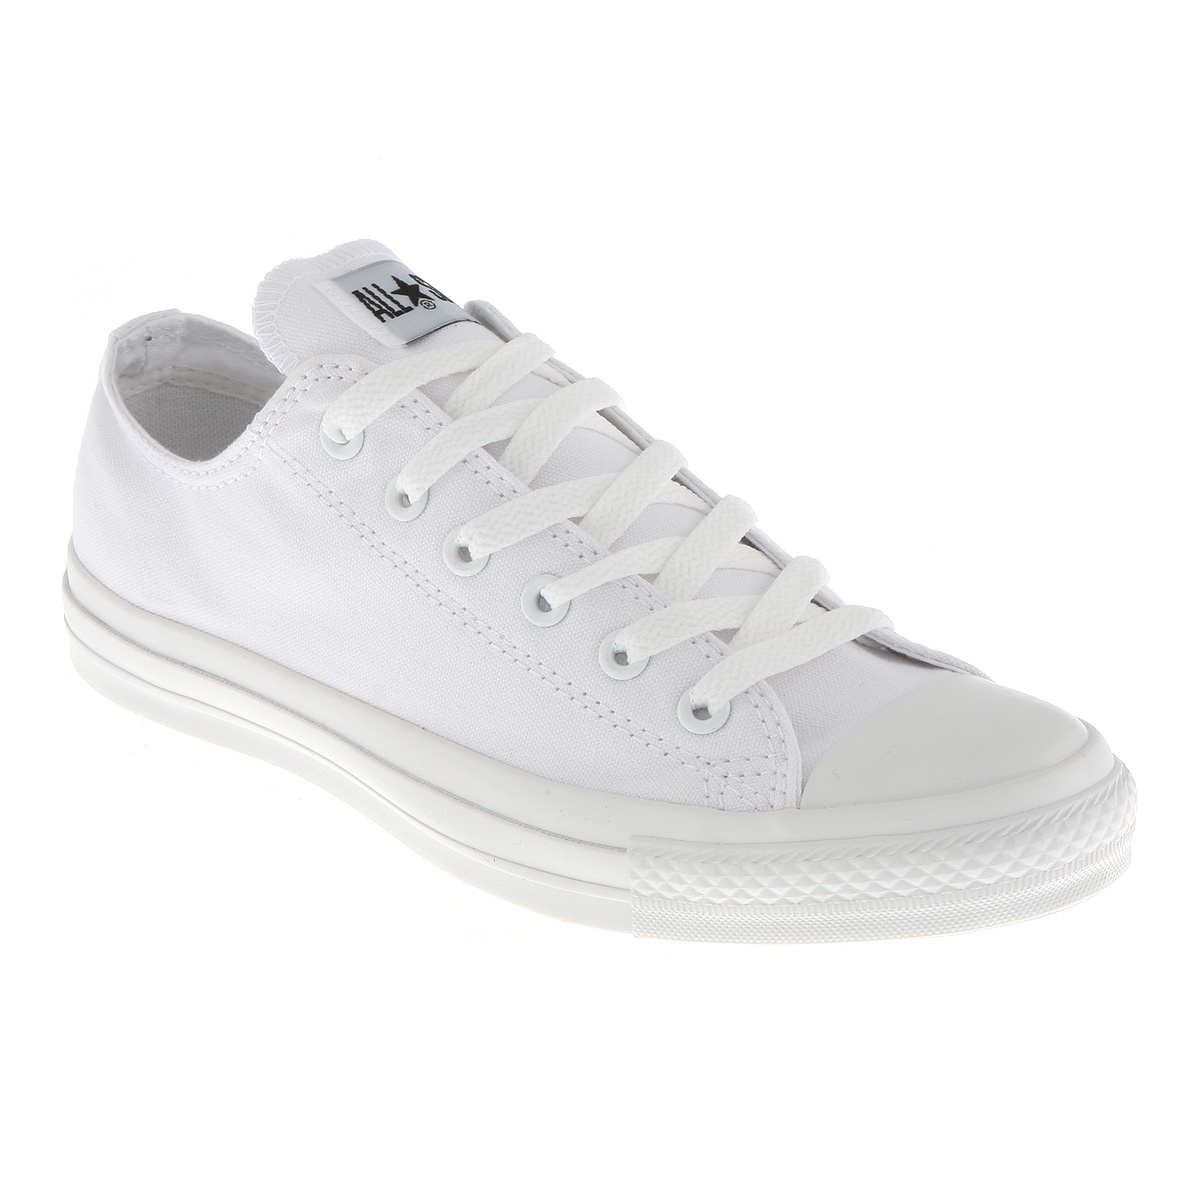 Converse All Star Oxford White Chuck Taylor New